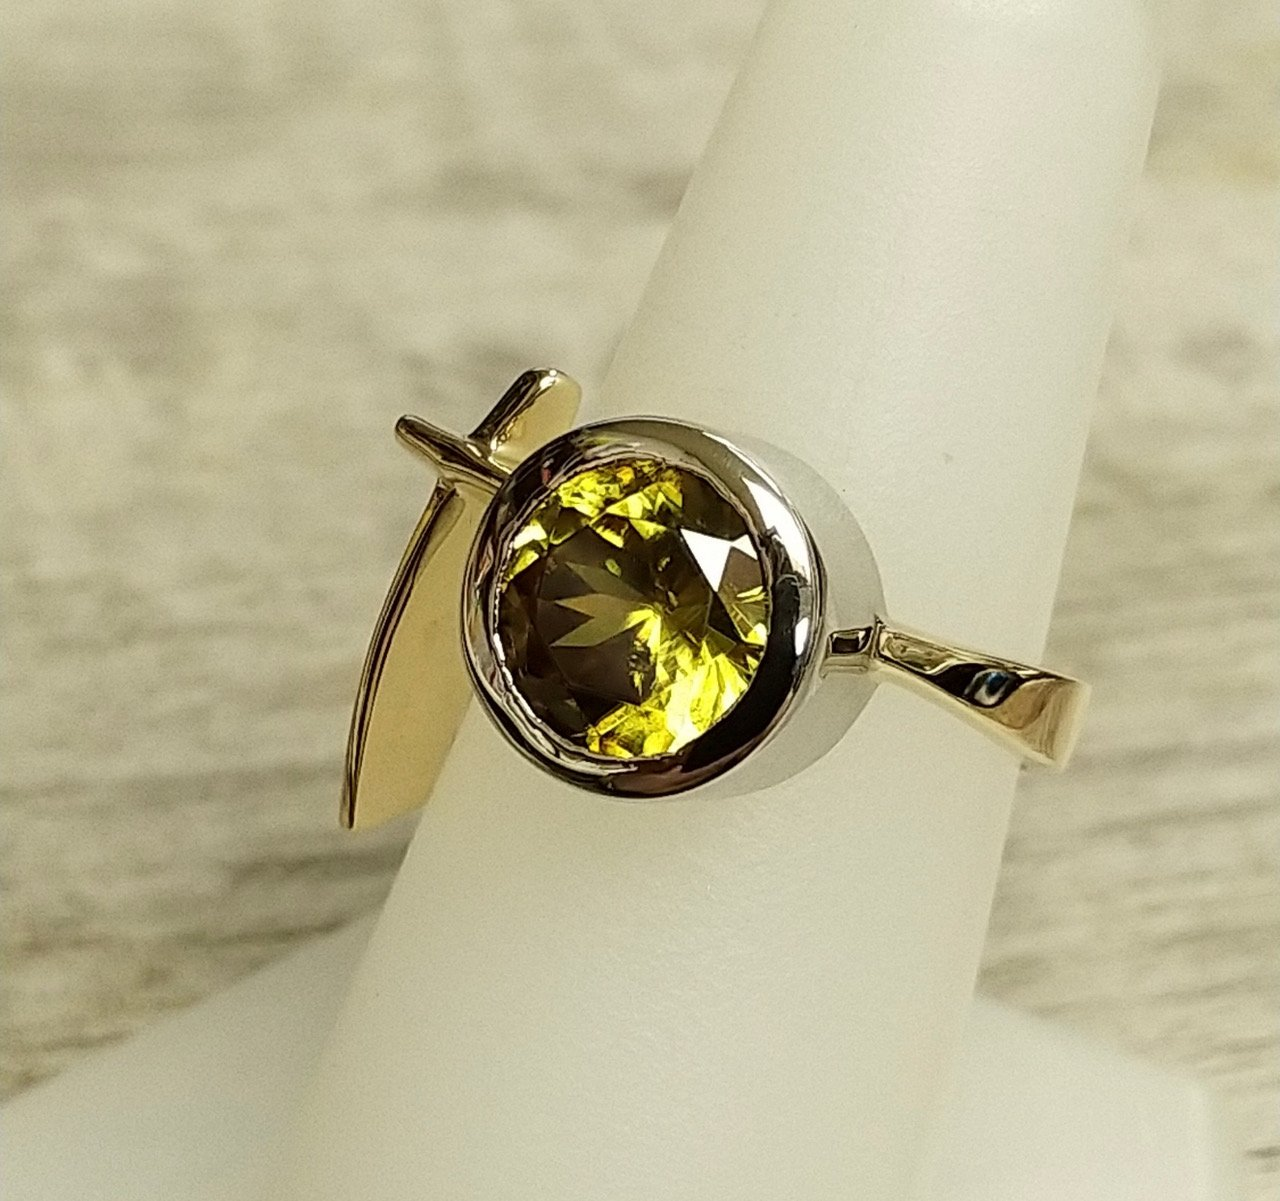 3.29 Total Carat Weight Sphene Bezel Set in 14 Karat White and Yellow Gold